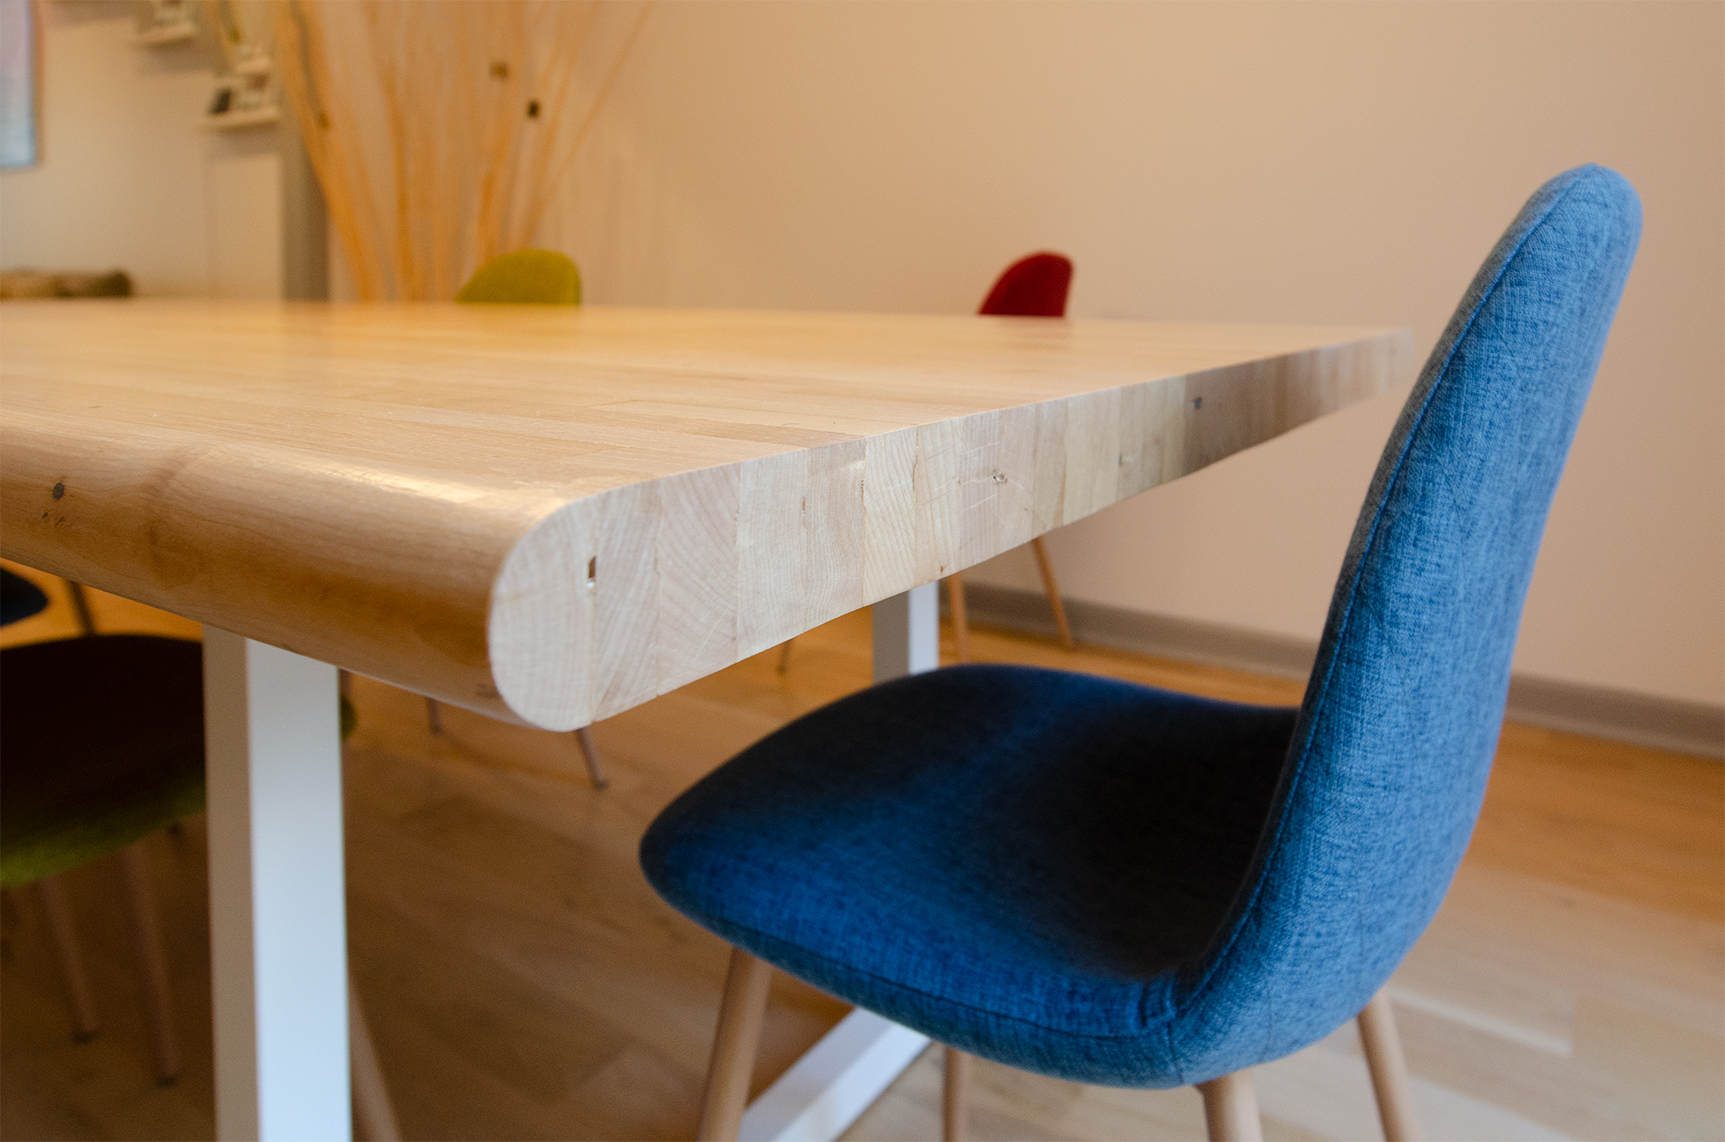 Detail photo of the rounded table lip